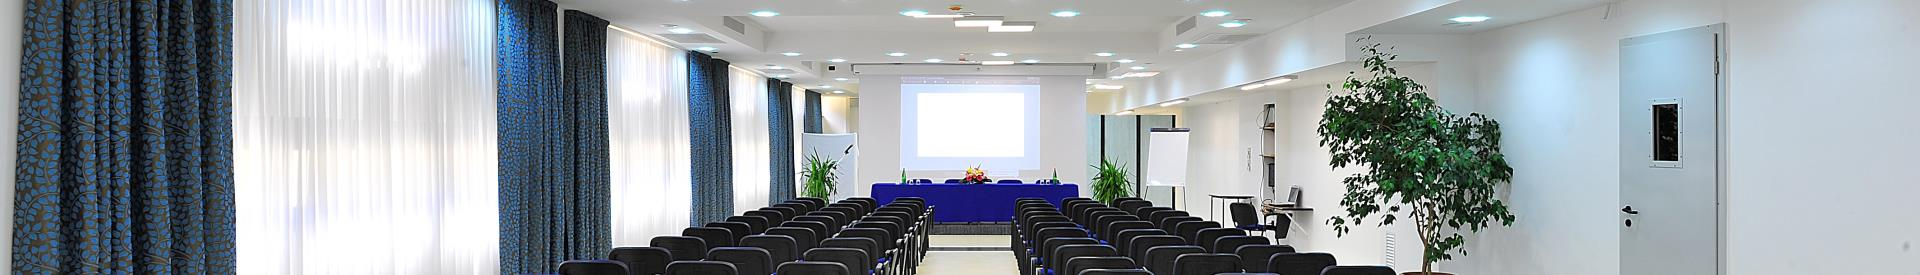 Best Western Blu Hotel Rome - North Star Meeting Room